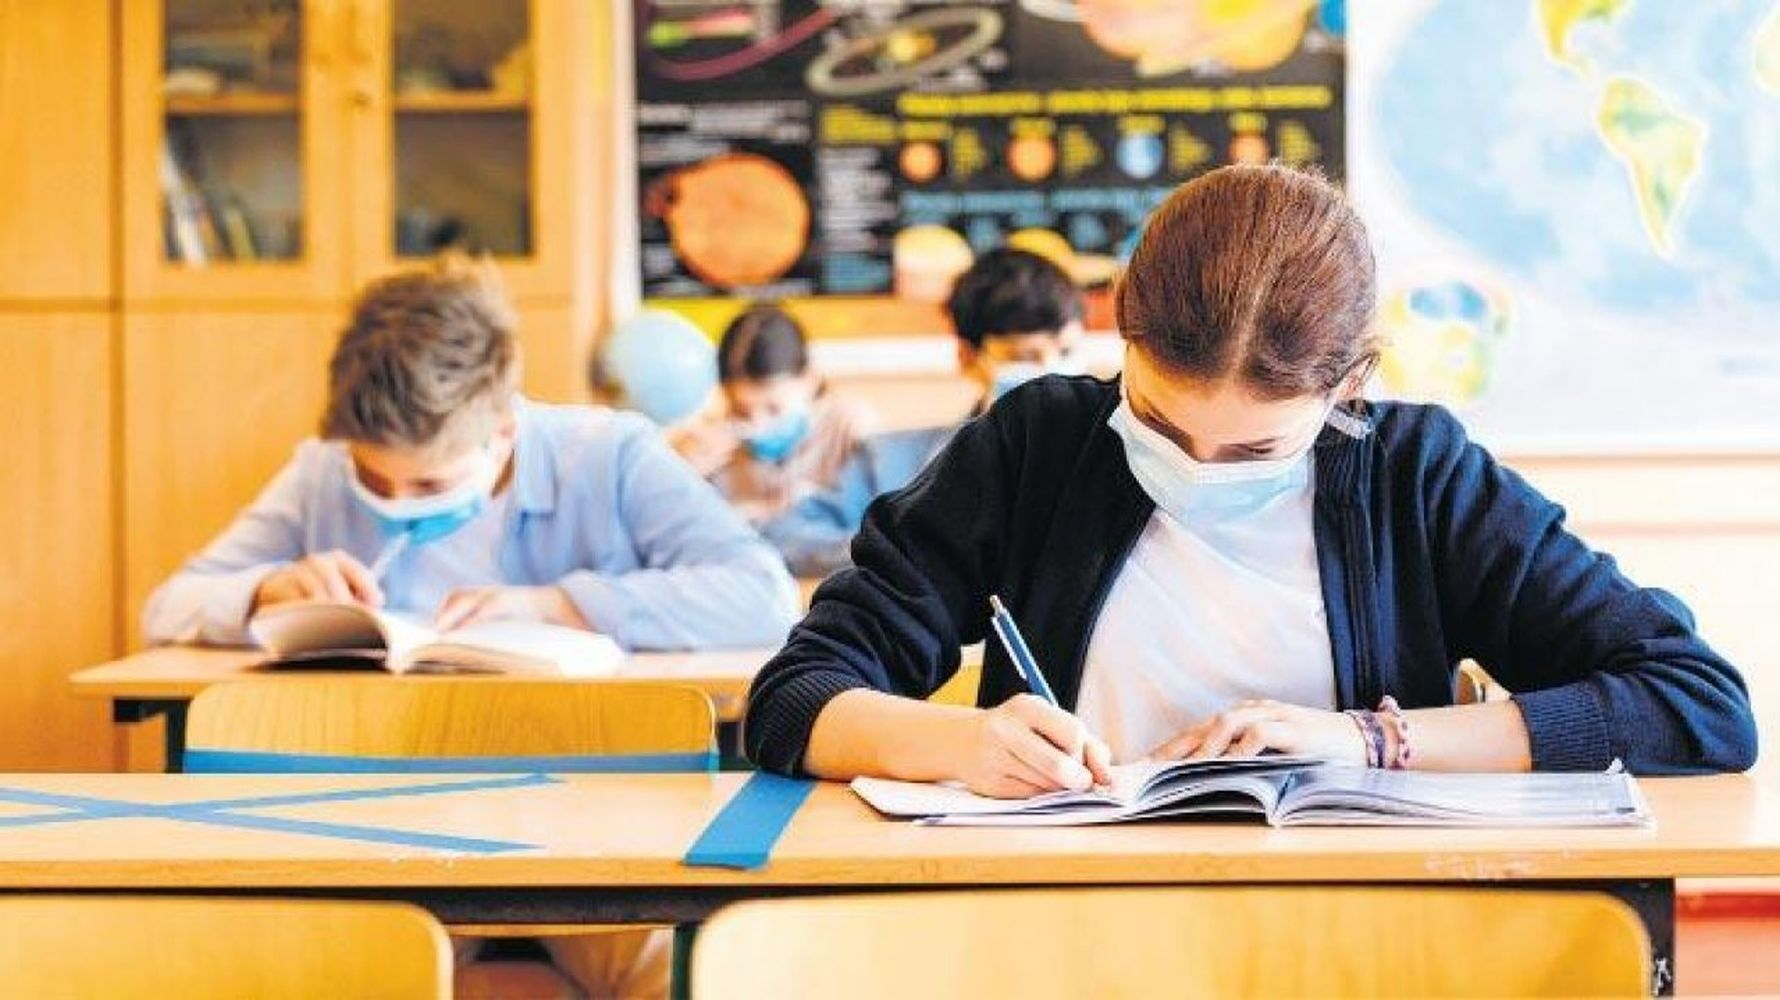 An explanation of the date of education and exam from face to face after the decision to close